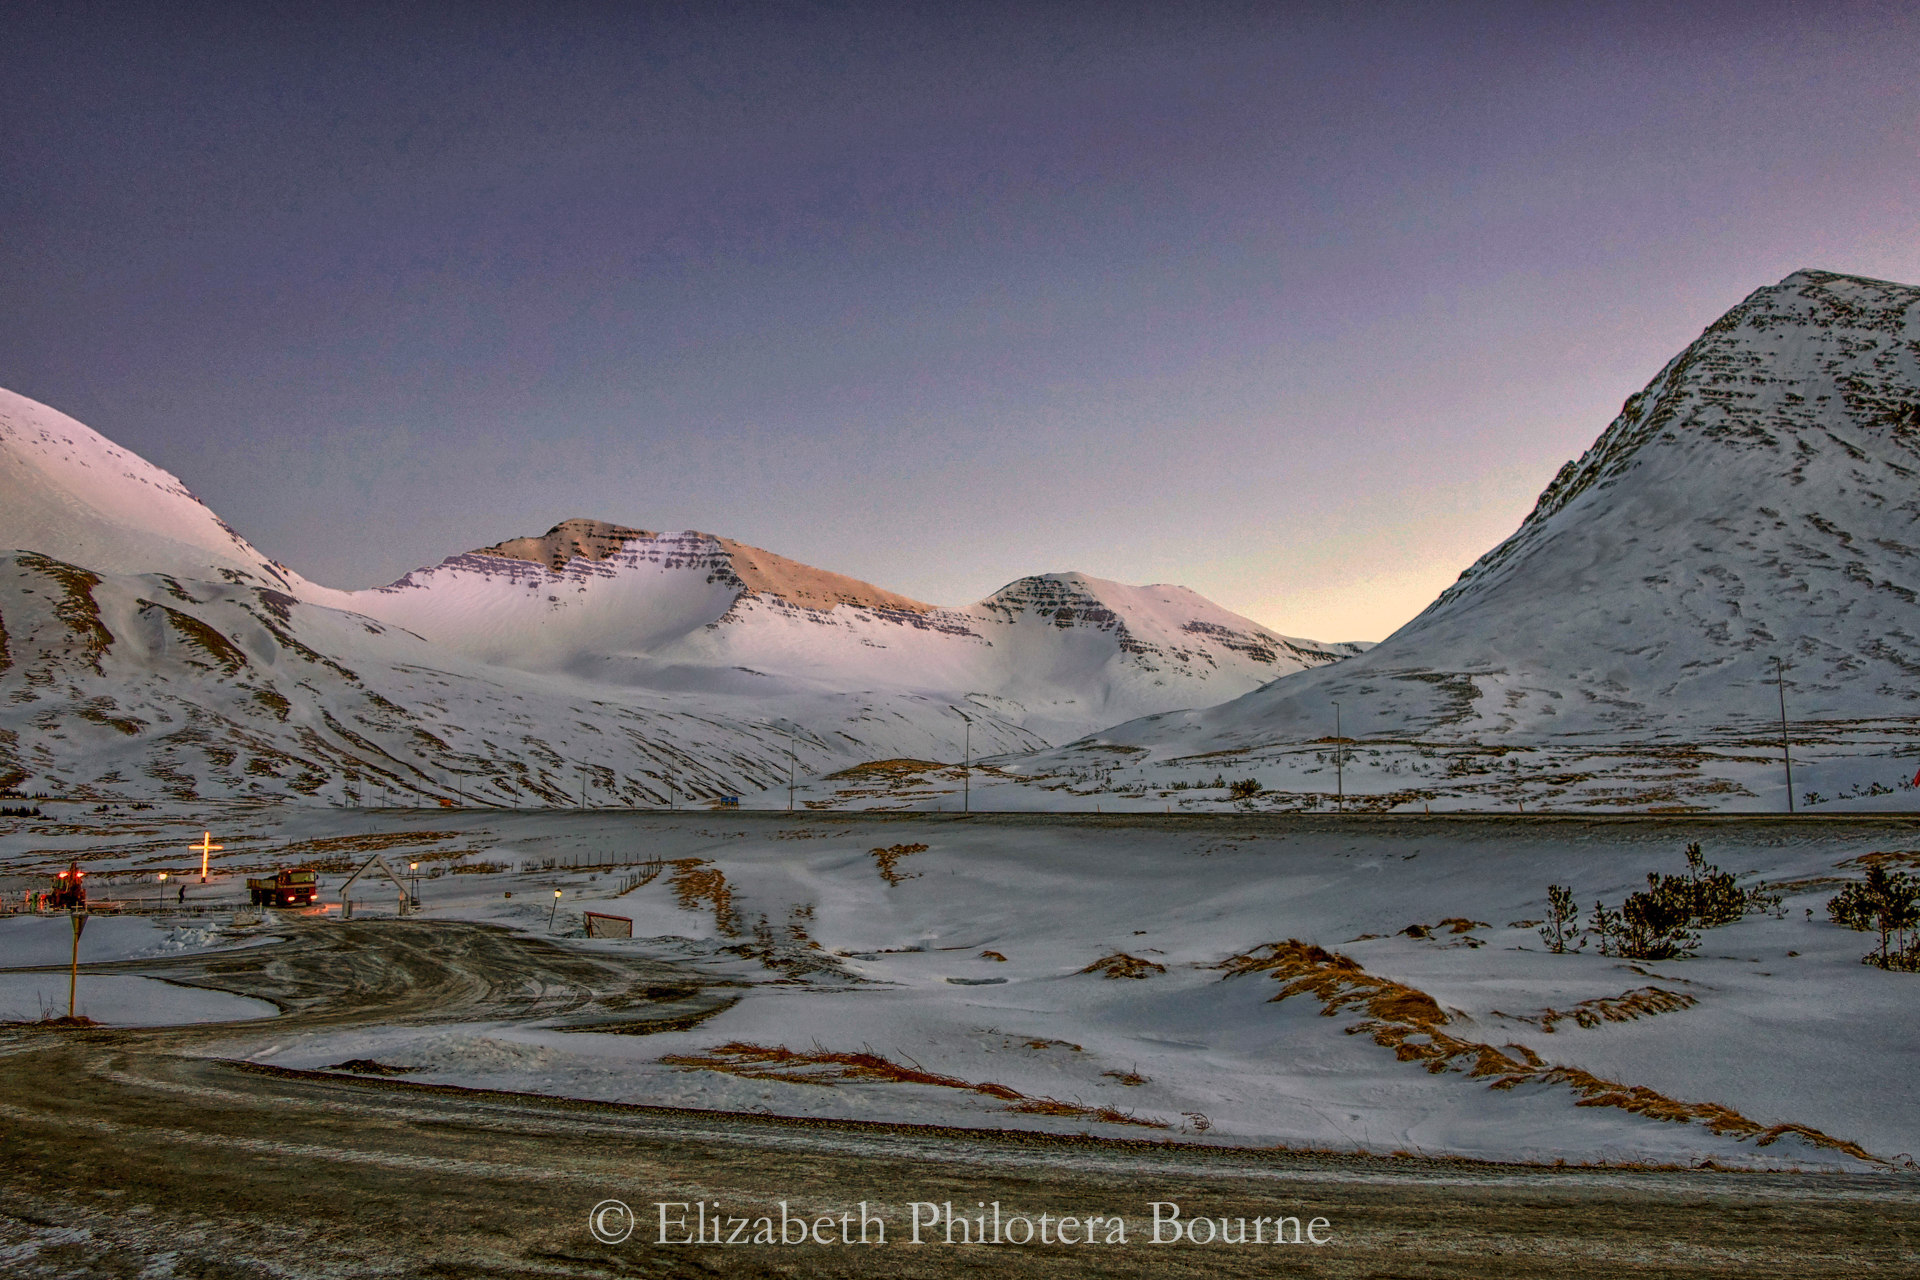 Sunset illuminating snowy mountains and electric cemetary in winter in Iceland